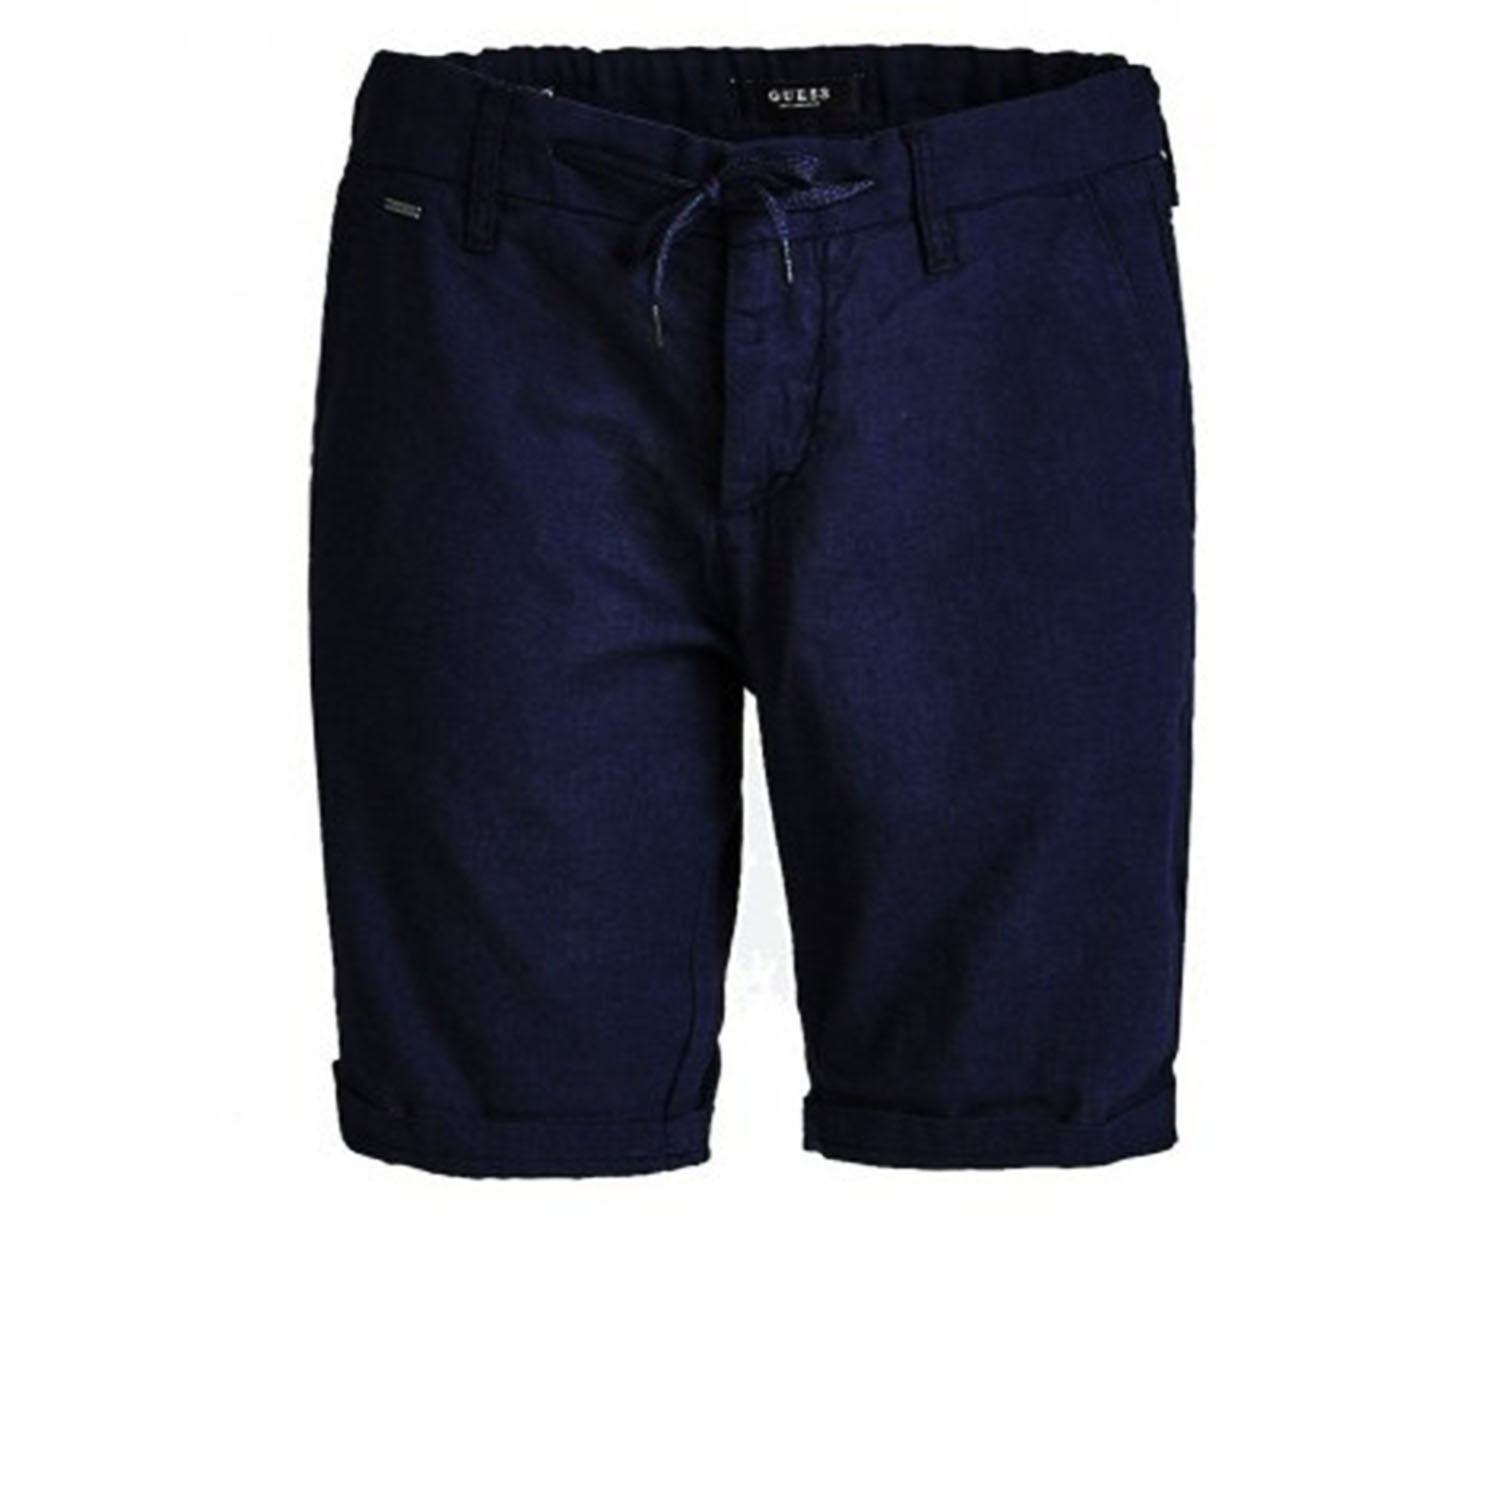 Guess Cotton Shorts with Ties